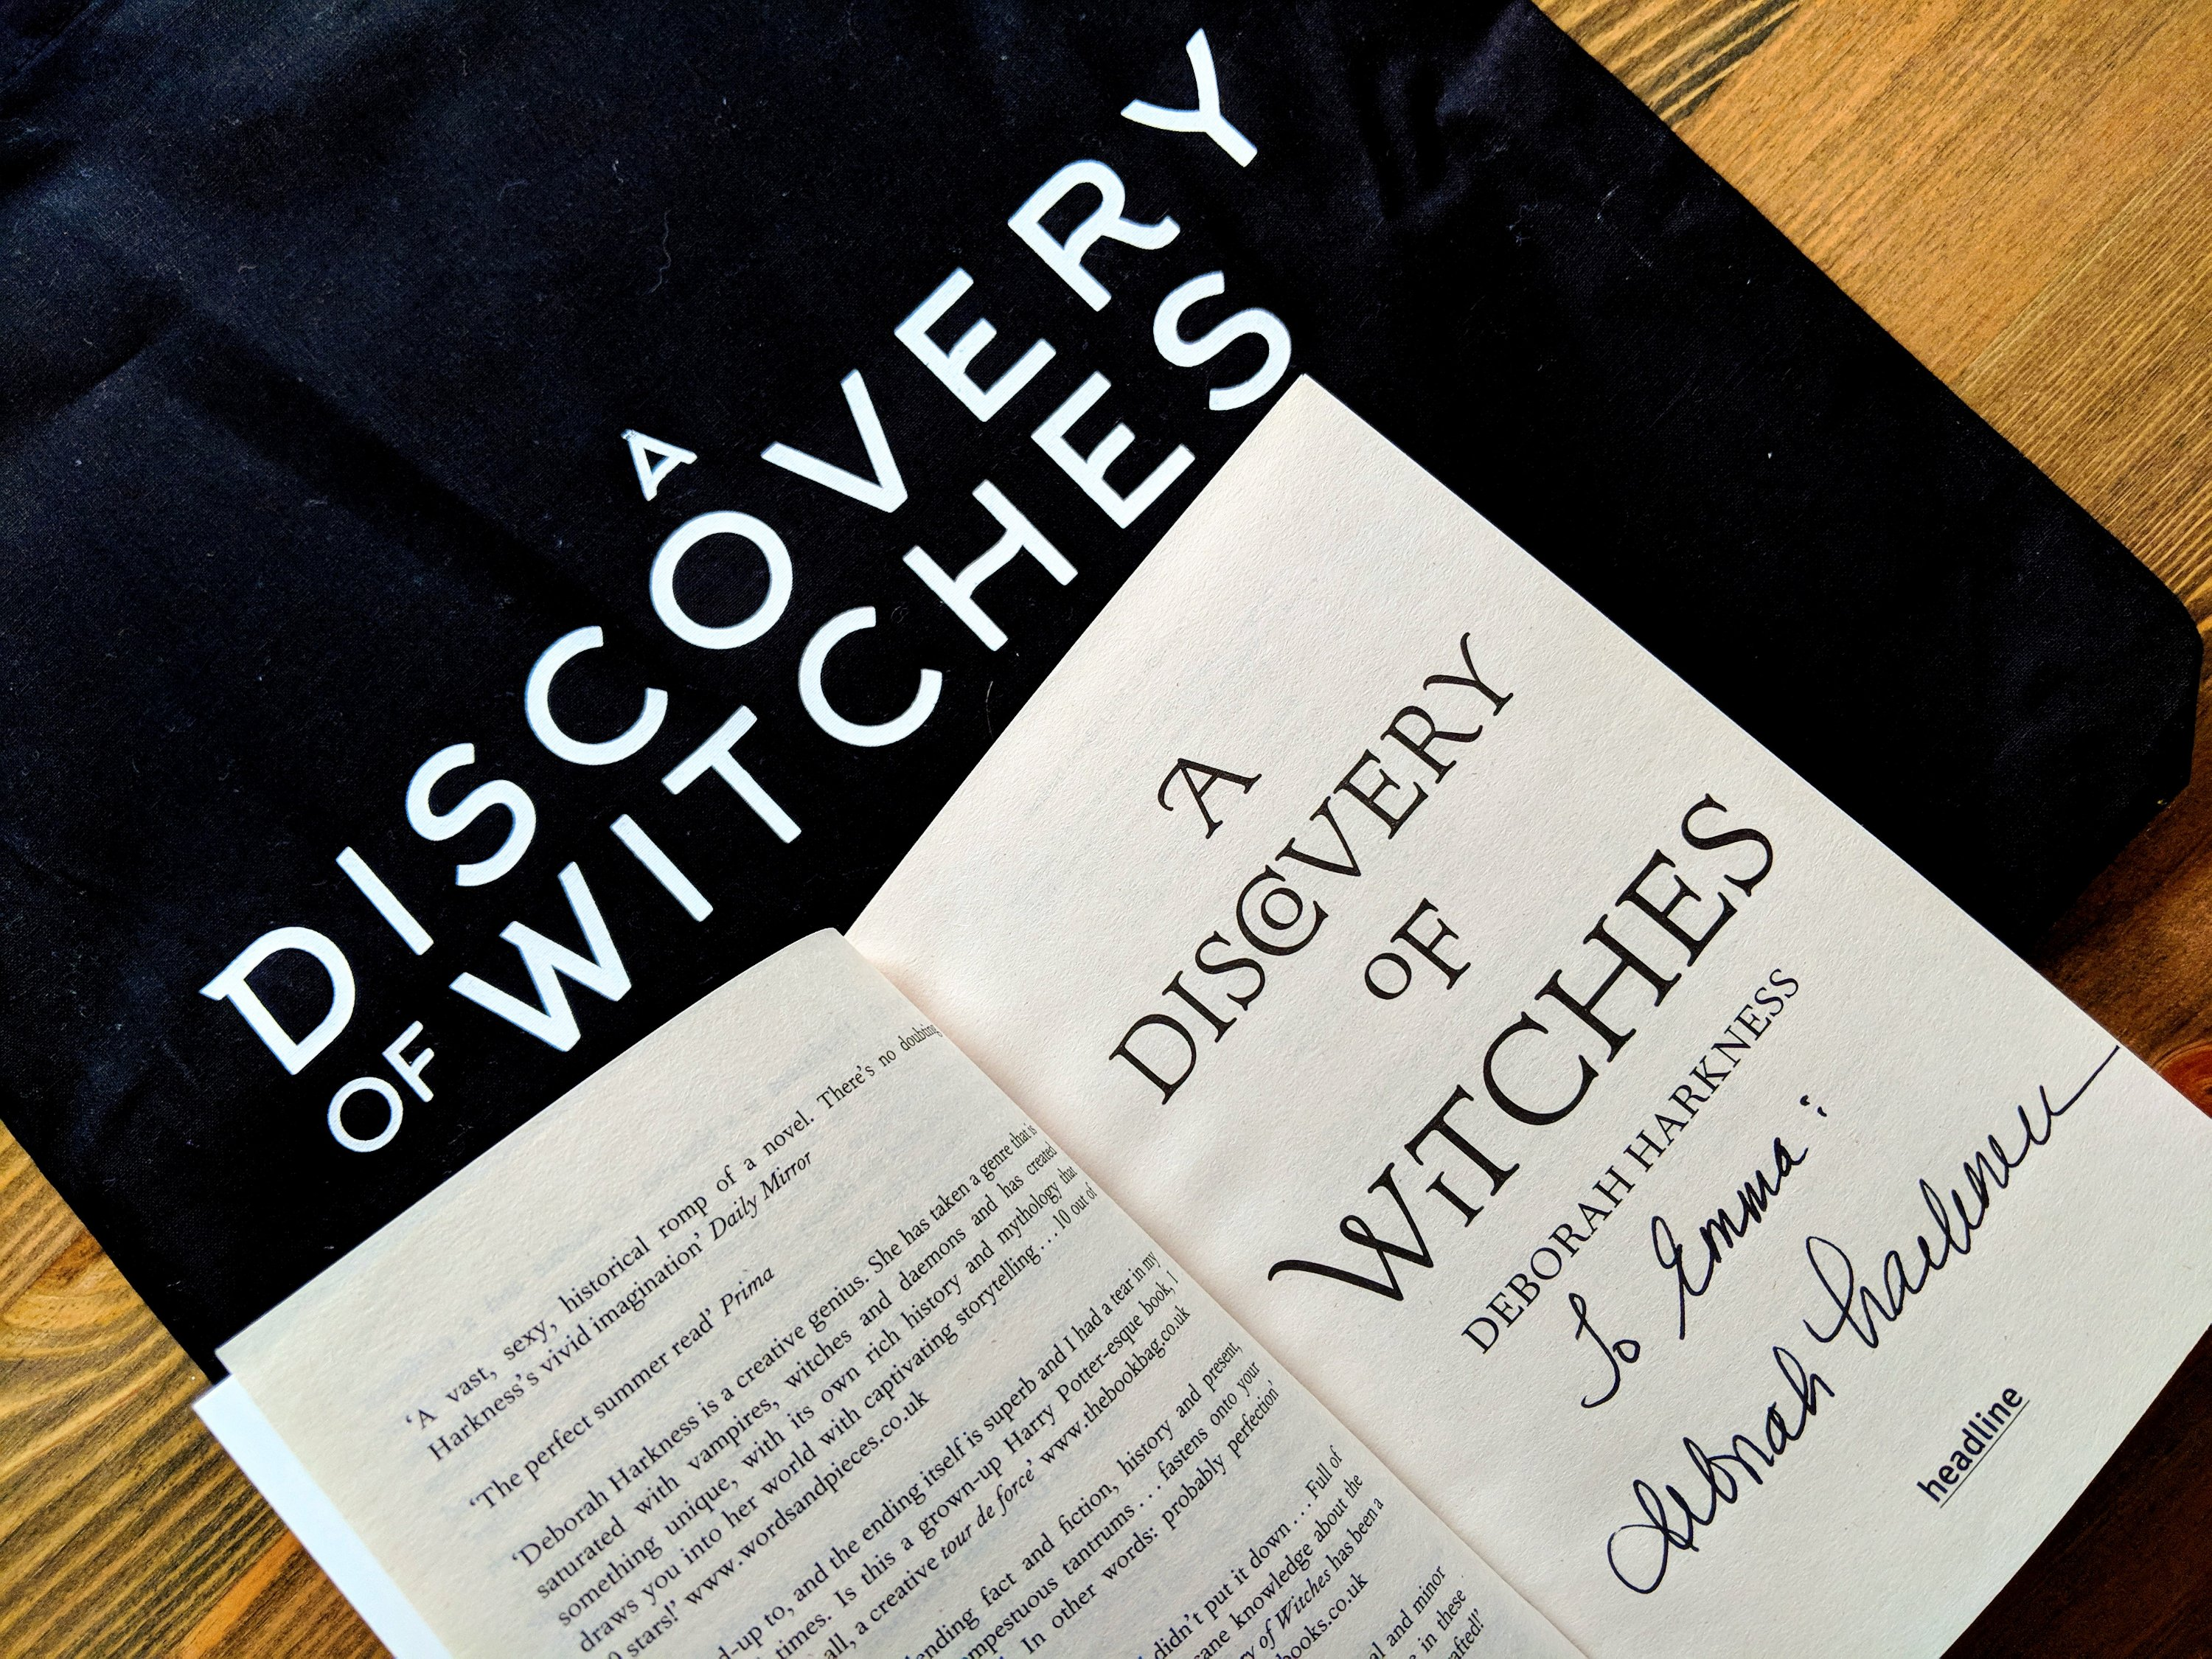 A Discovery of Witches book signed by Deborah Harkness and A Discovery of Witches black tote bag